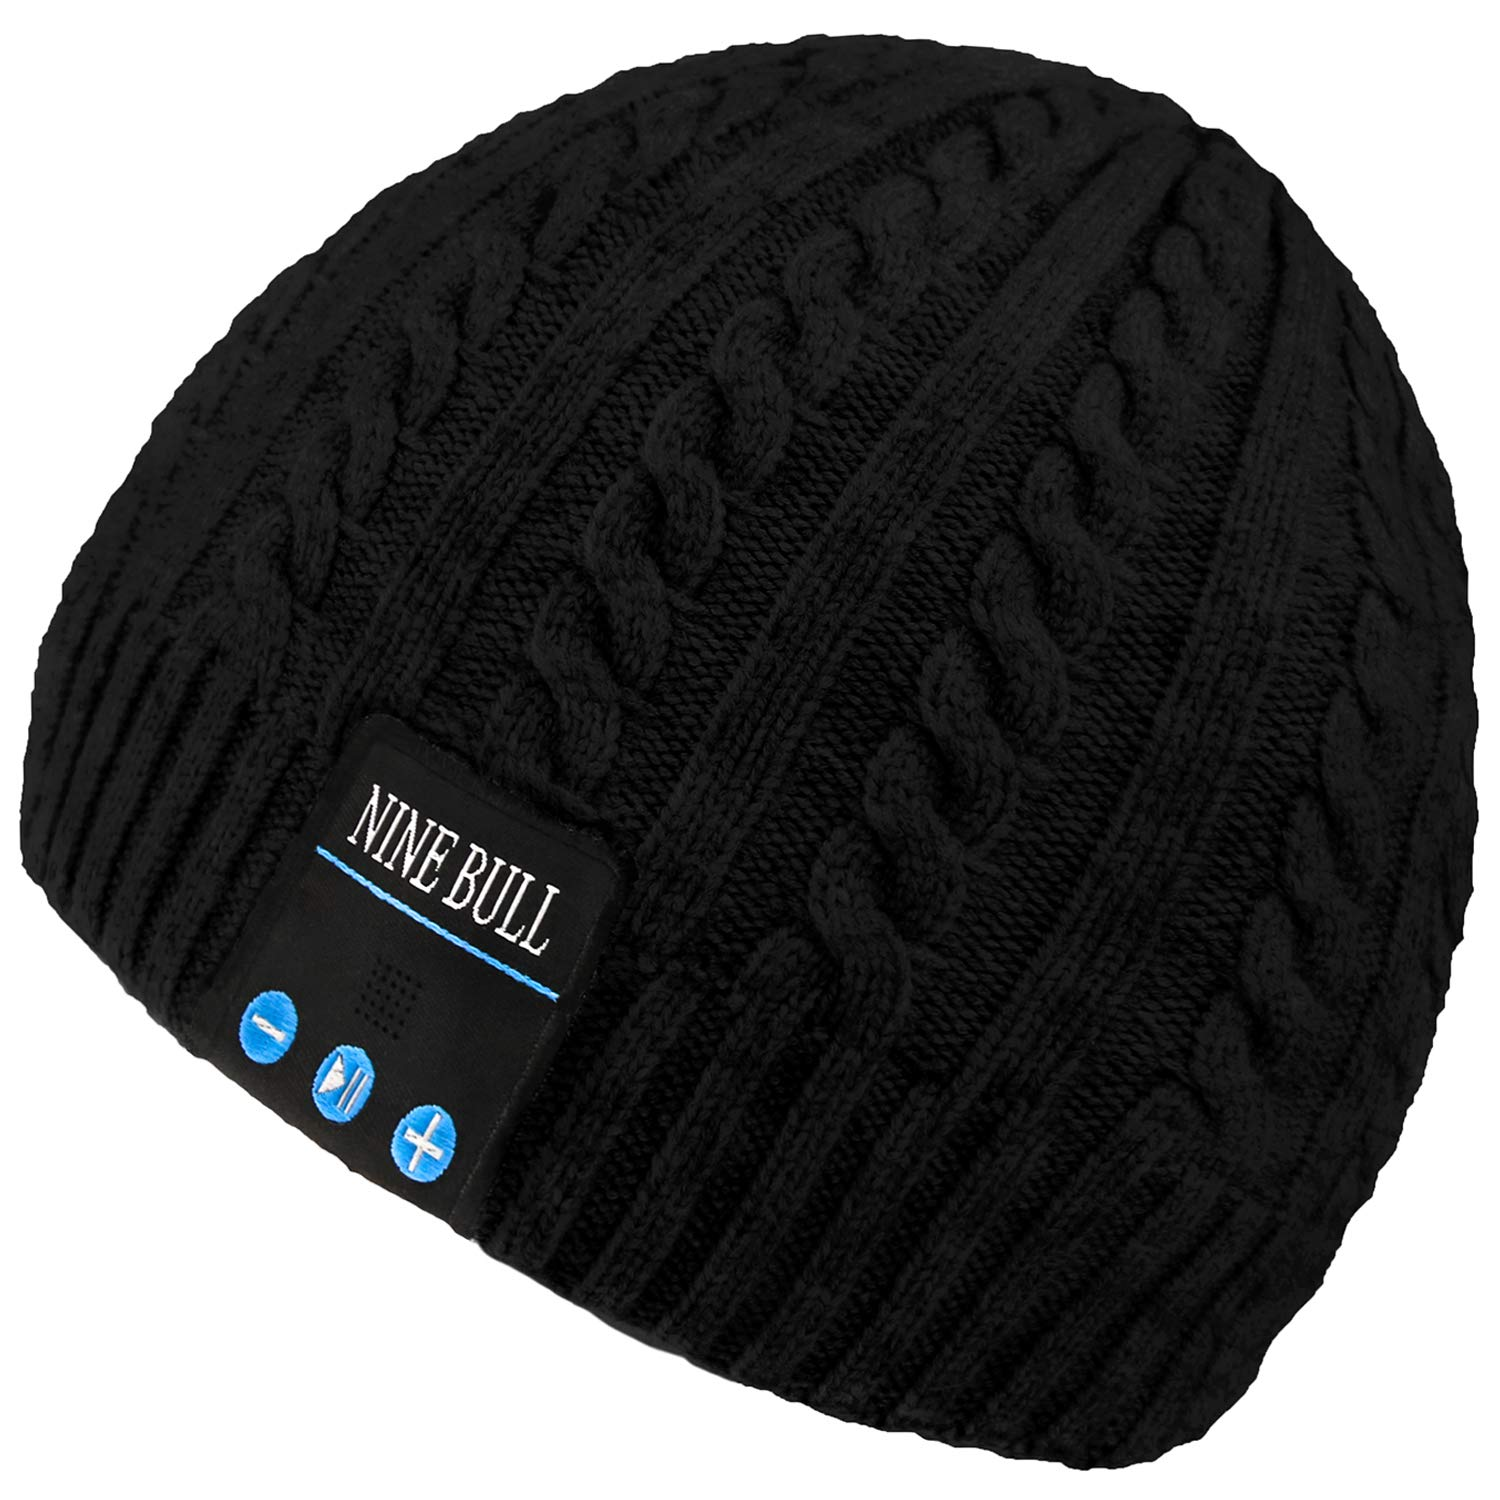 Amazon.com  nine bull Bluetooth Beanie Hat cb021c5af3b